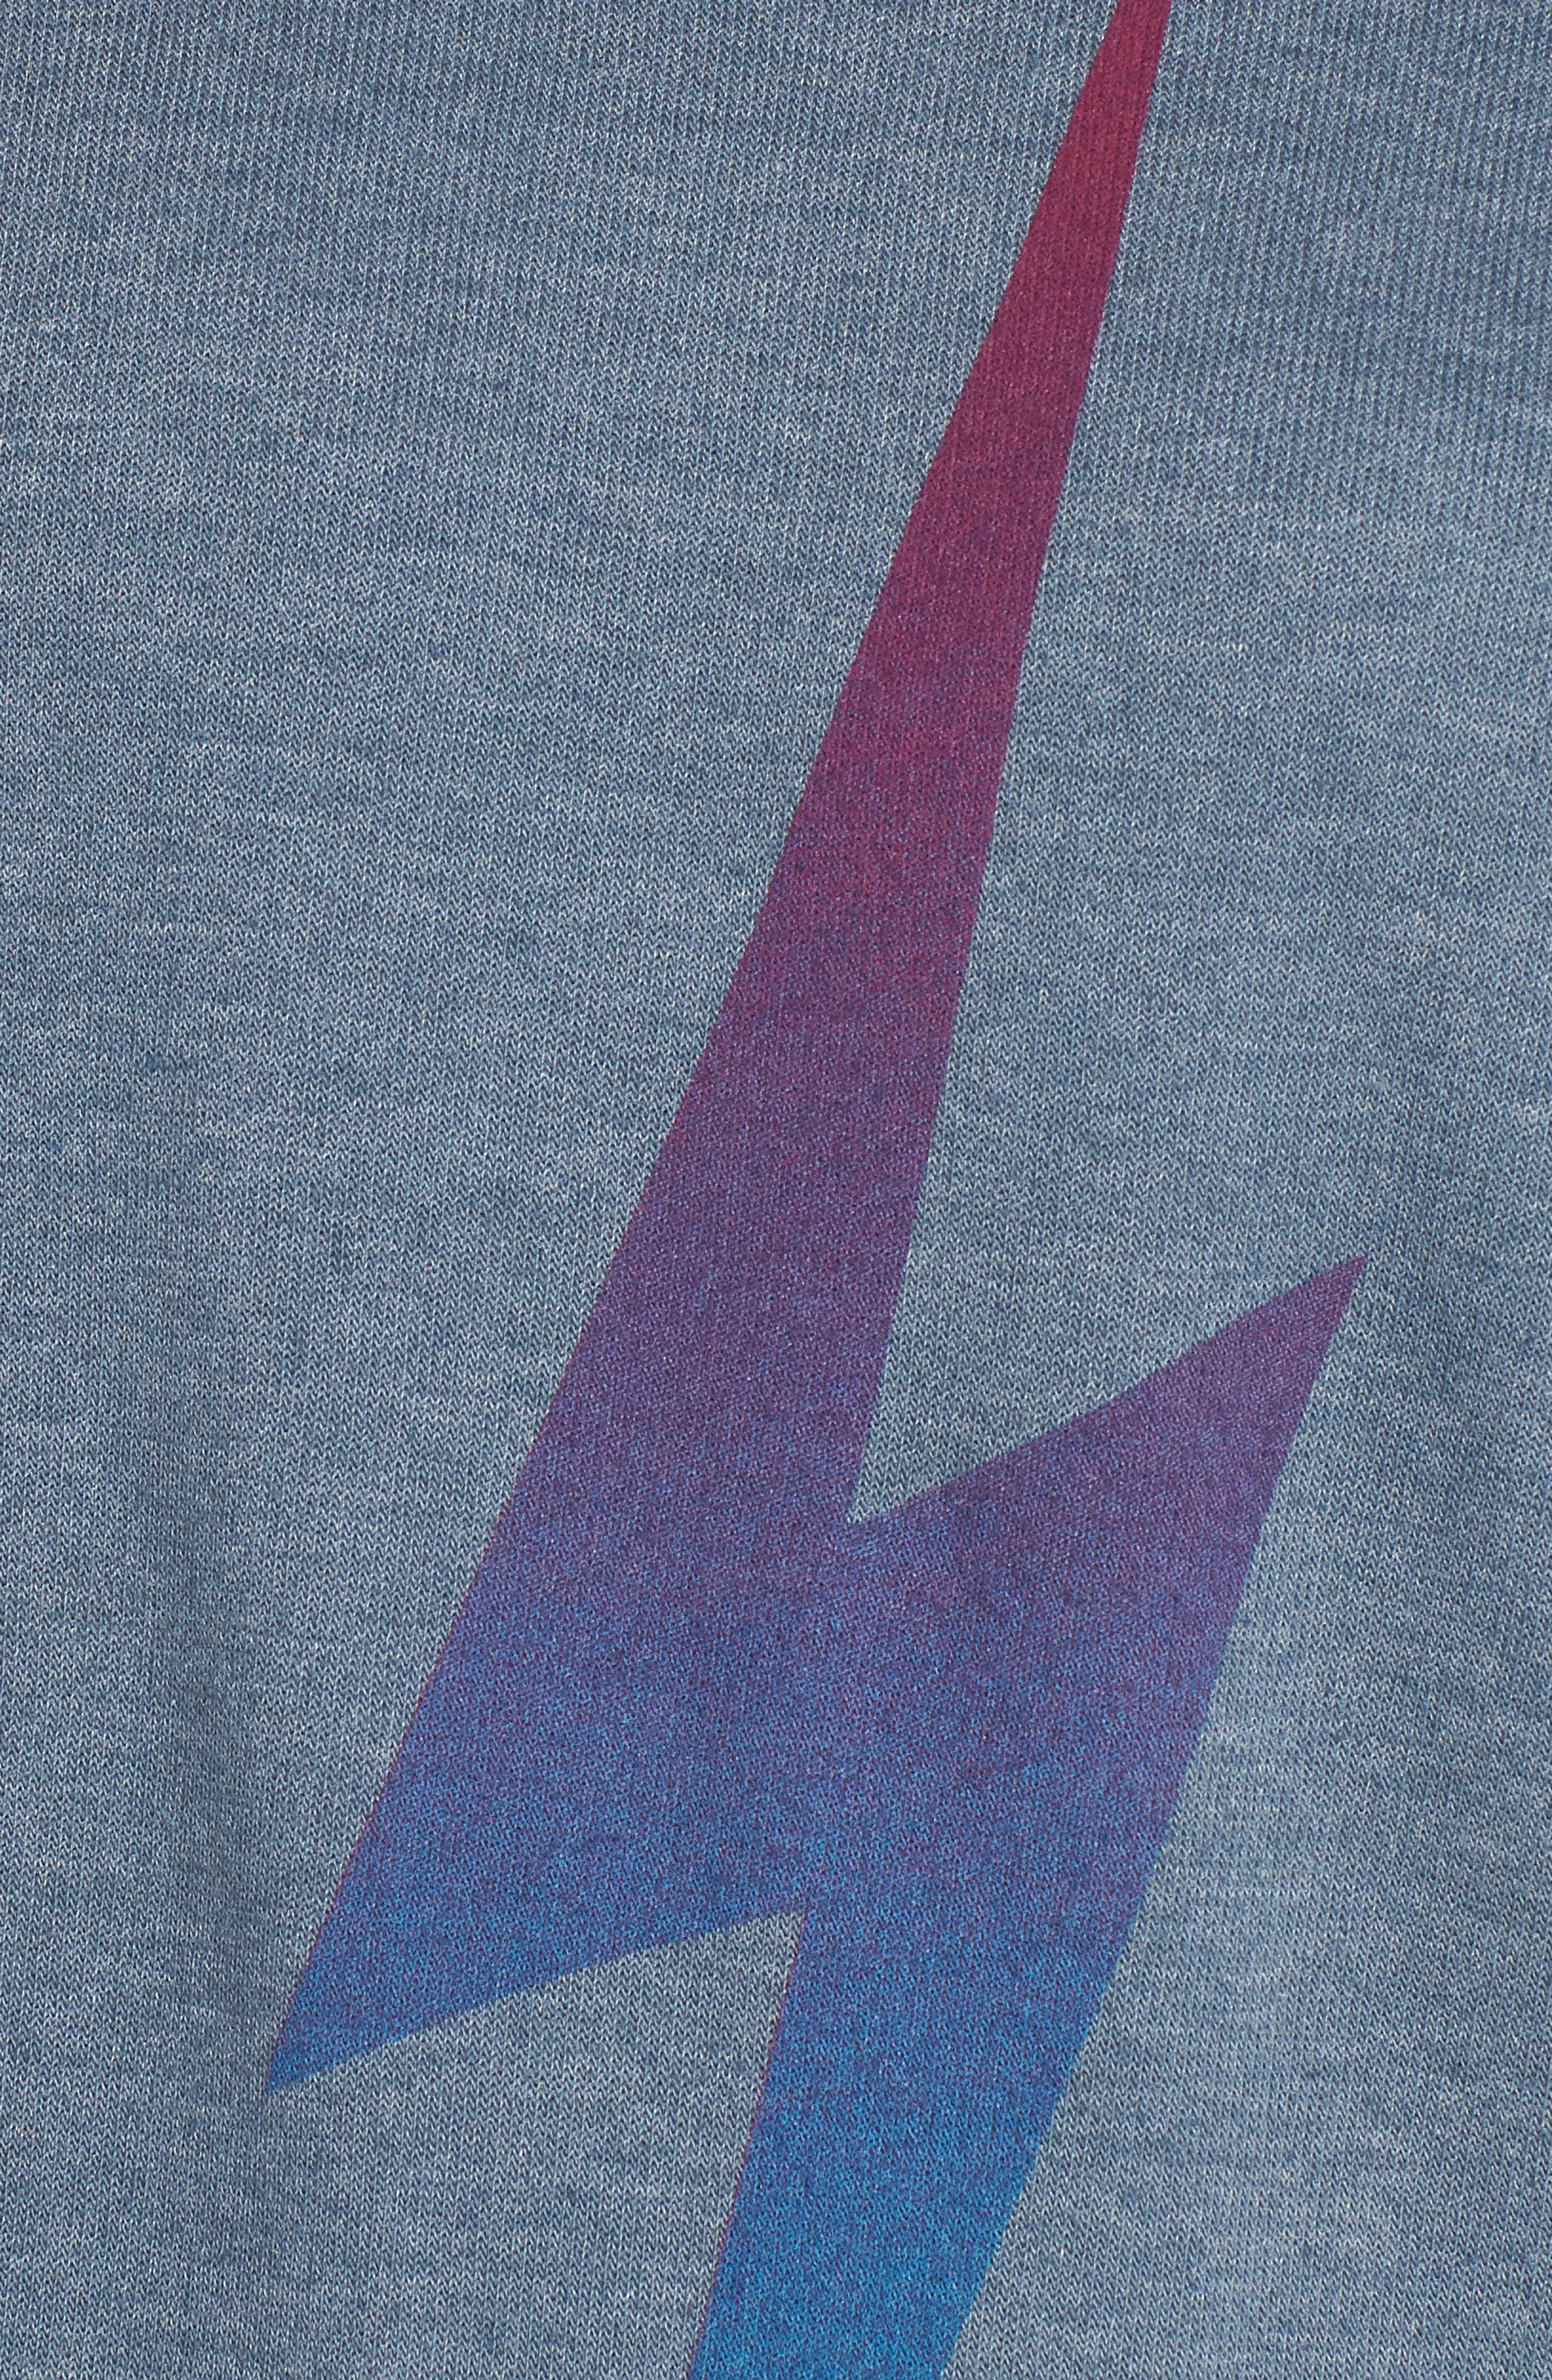 Bolt Fade Sweatshirt,                             Alternate thumbnail 6, color,                             SLATE/ PURPLE